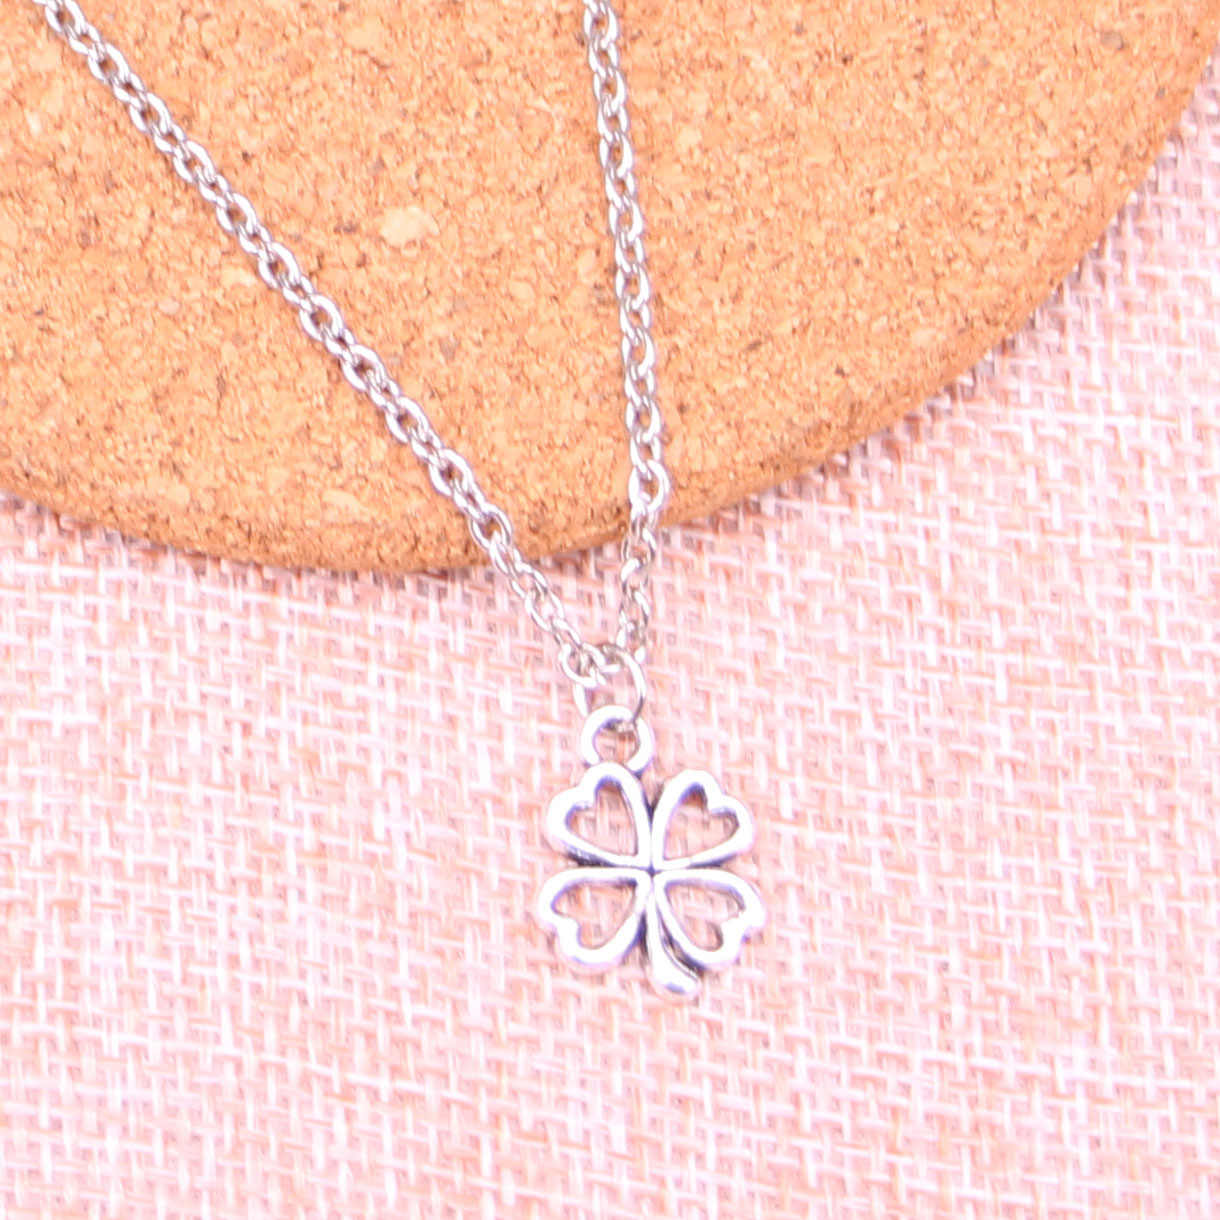 Fashion Antique Silver Color 17*14mm lucky irish four leaf clover Pendant Necklace,Handmade Necklace Dropship Suppliers